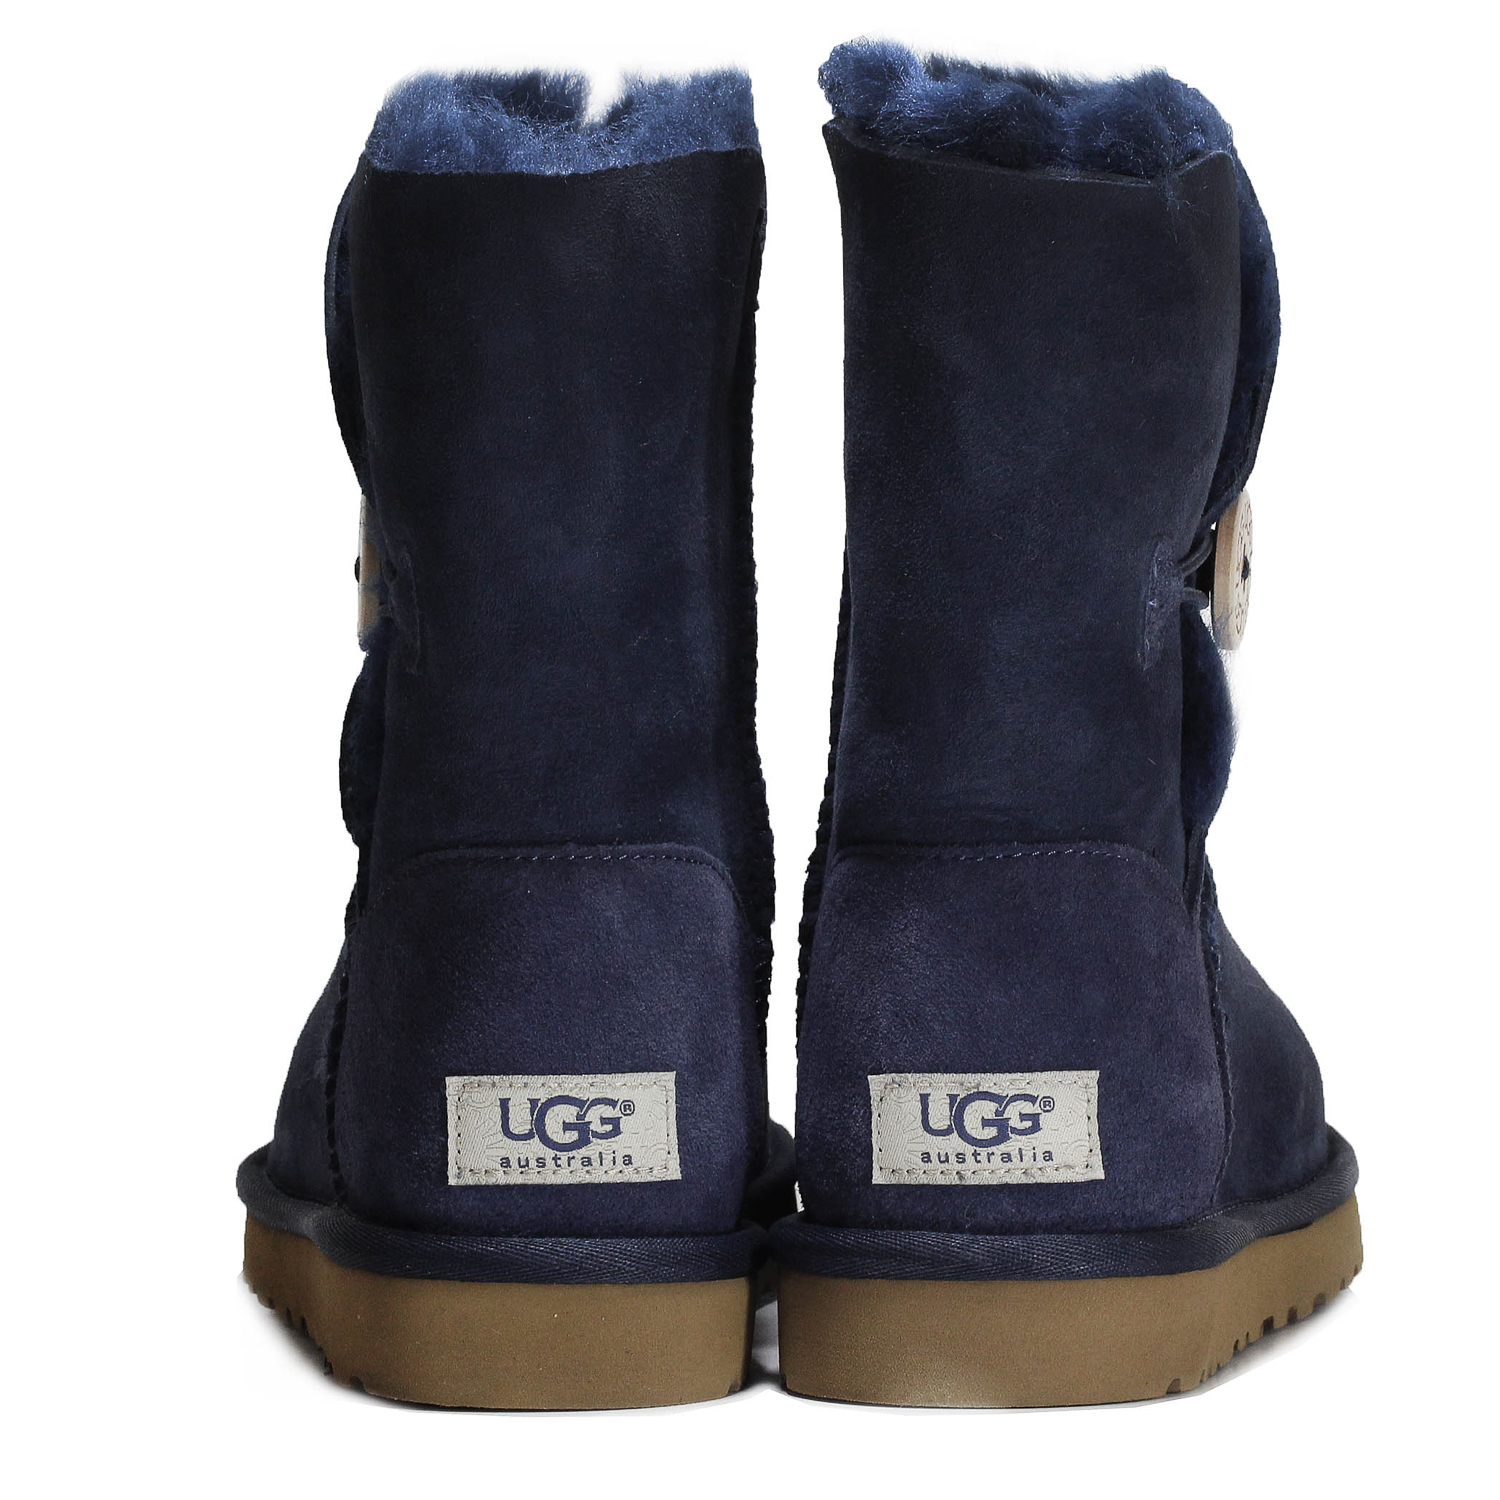 a7a5798f77c Details about Ugg Women's Bailey Button Ankle Boot Shoes 5803W Navy